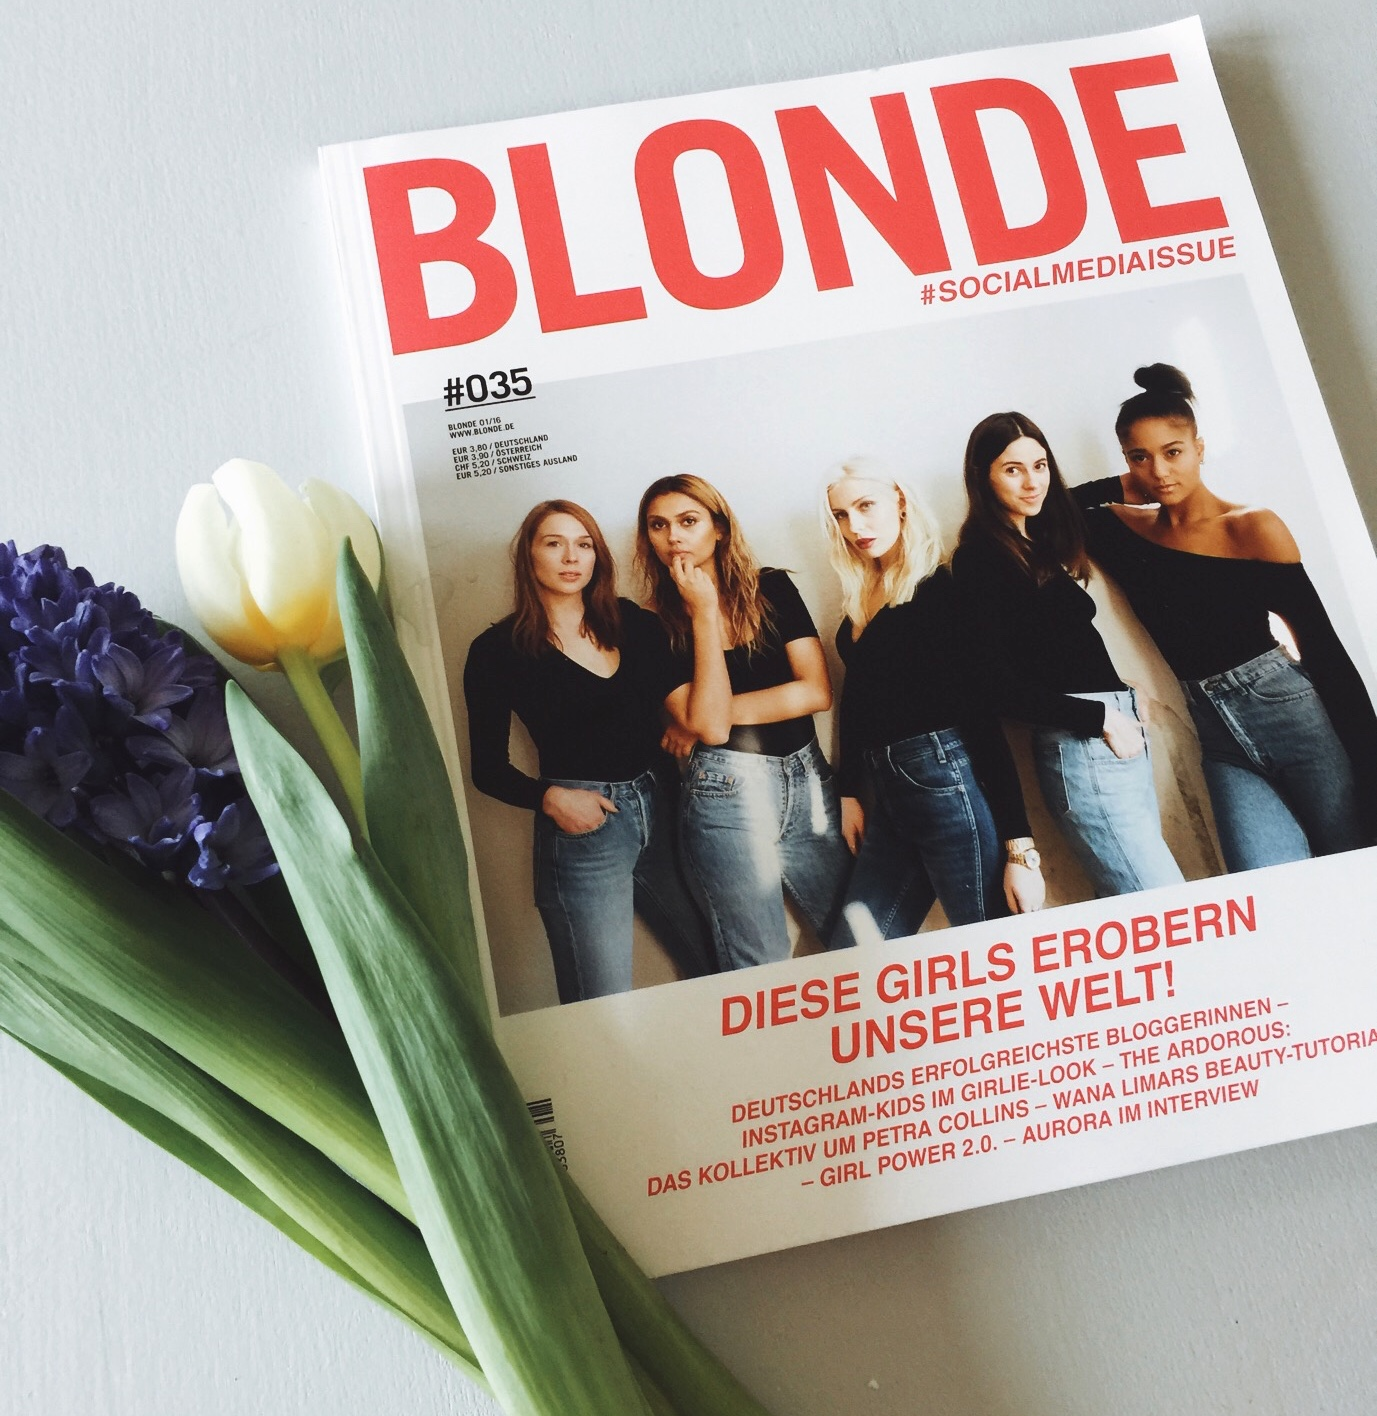 blonde socialmediaissue